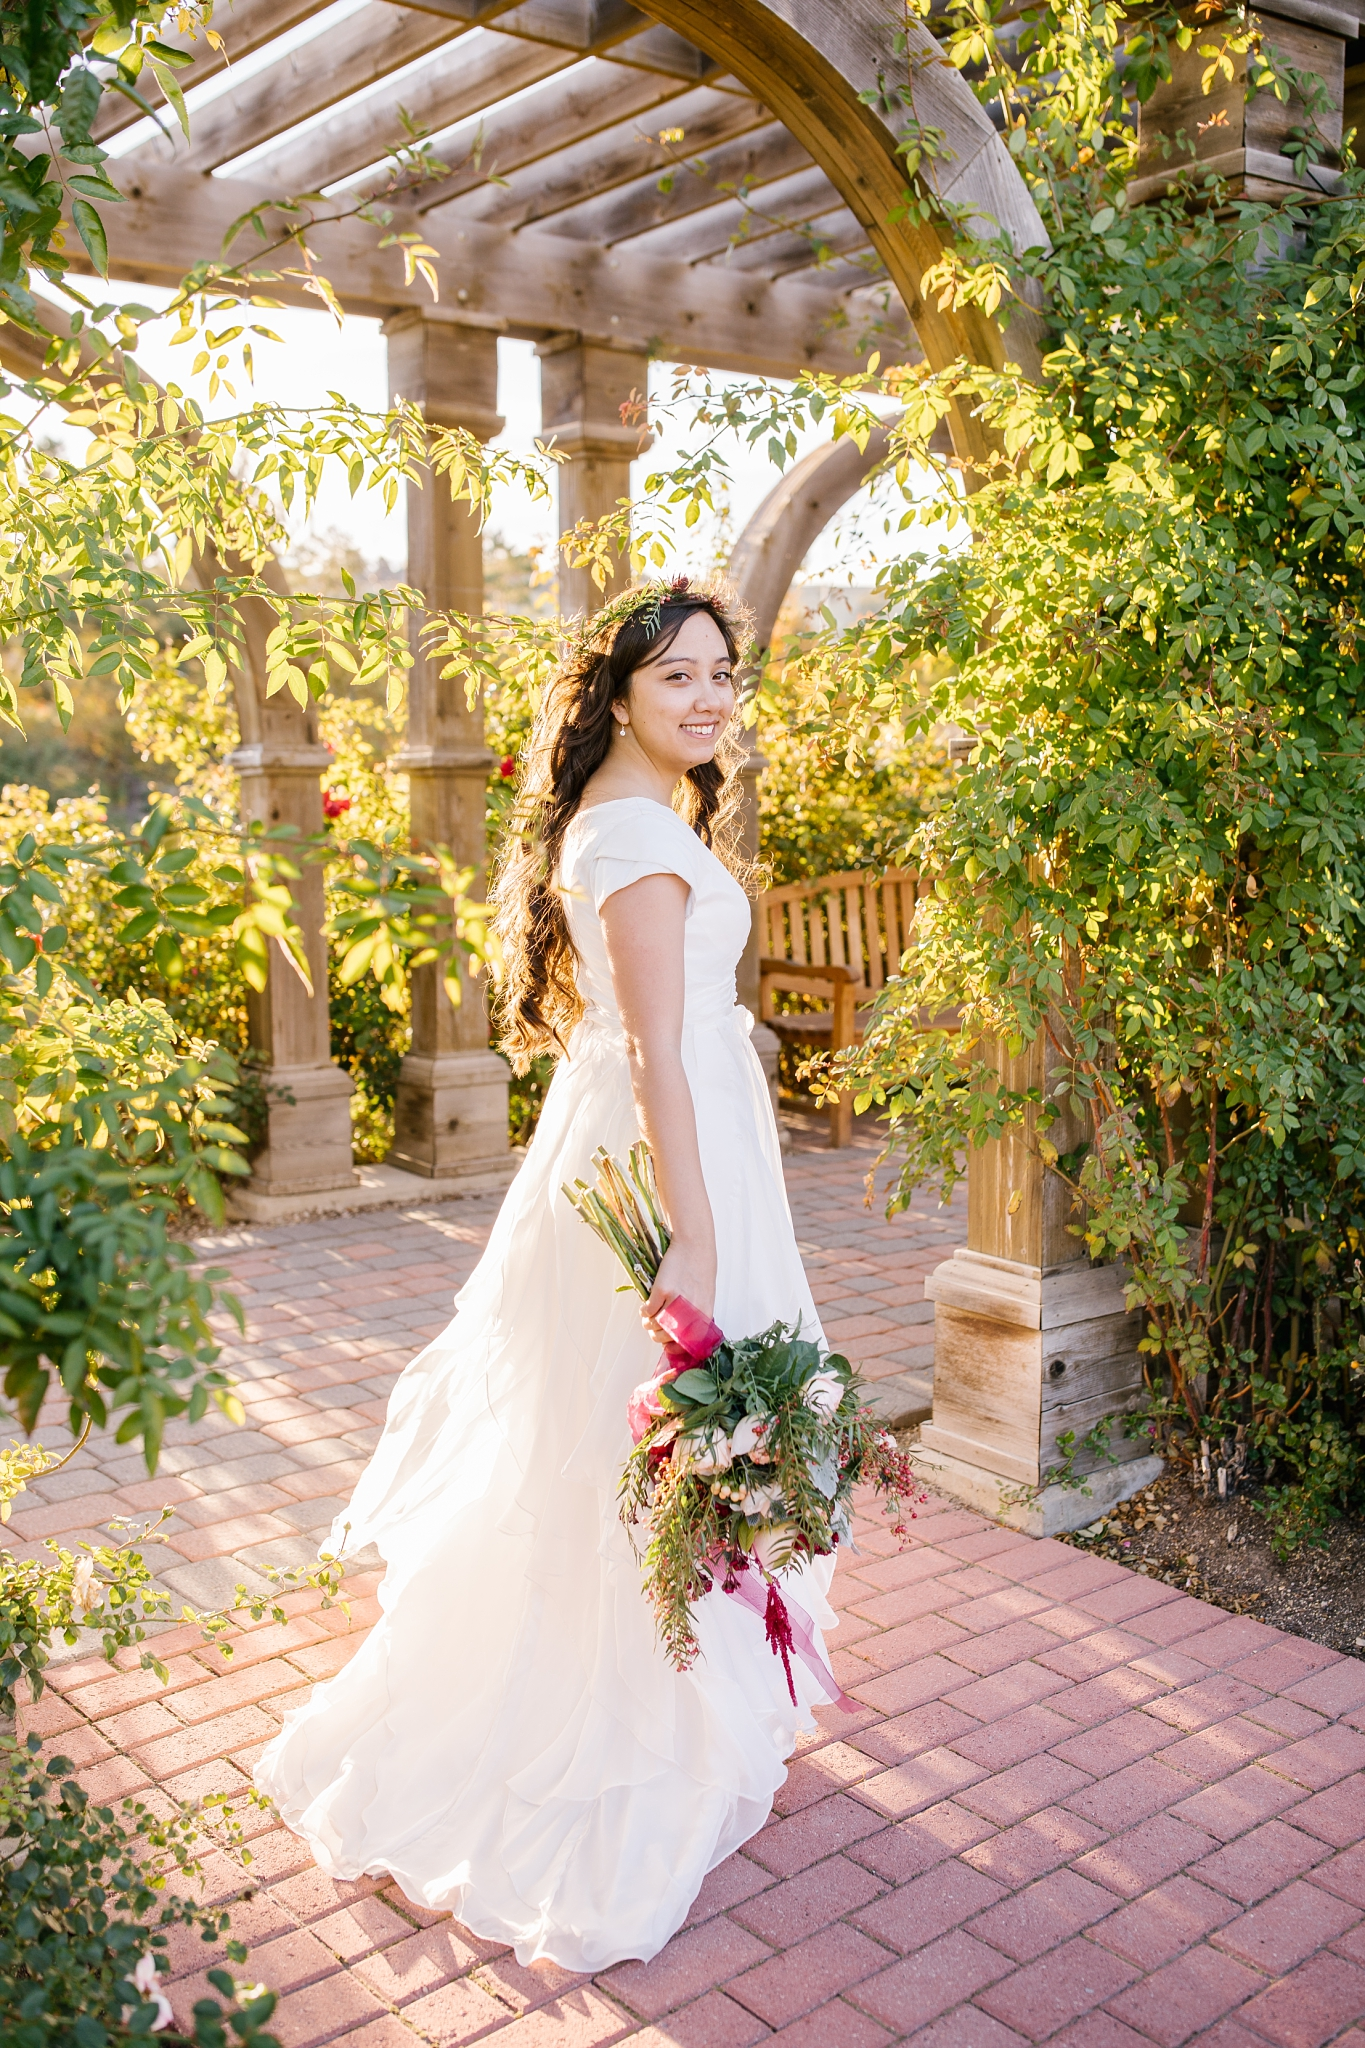 JB-Bridals-97_Lizzie-B-Imagery-Utah-Wedding-Photographer-Thanksgiving-Point-Ashton-Gardens-Lehi-Utah.jpg